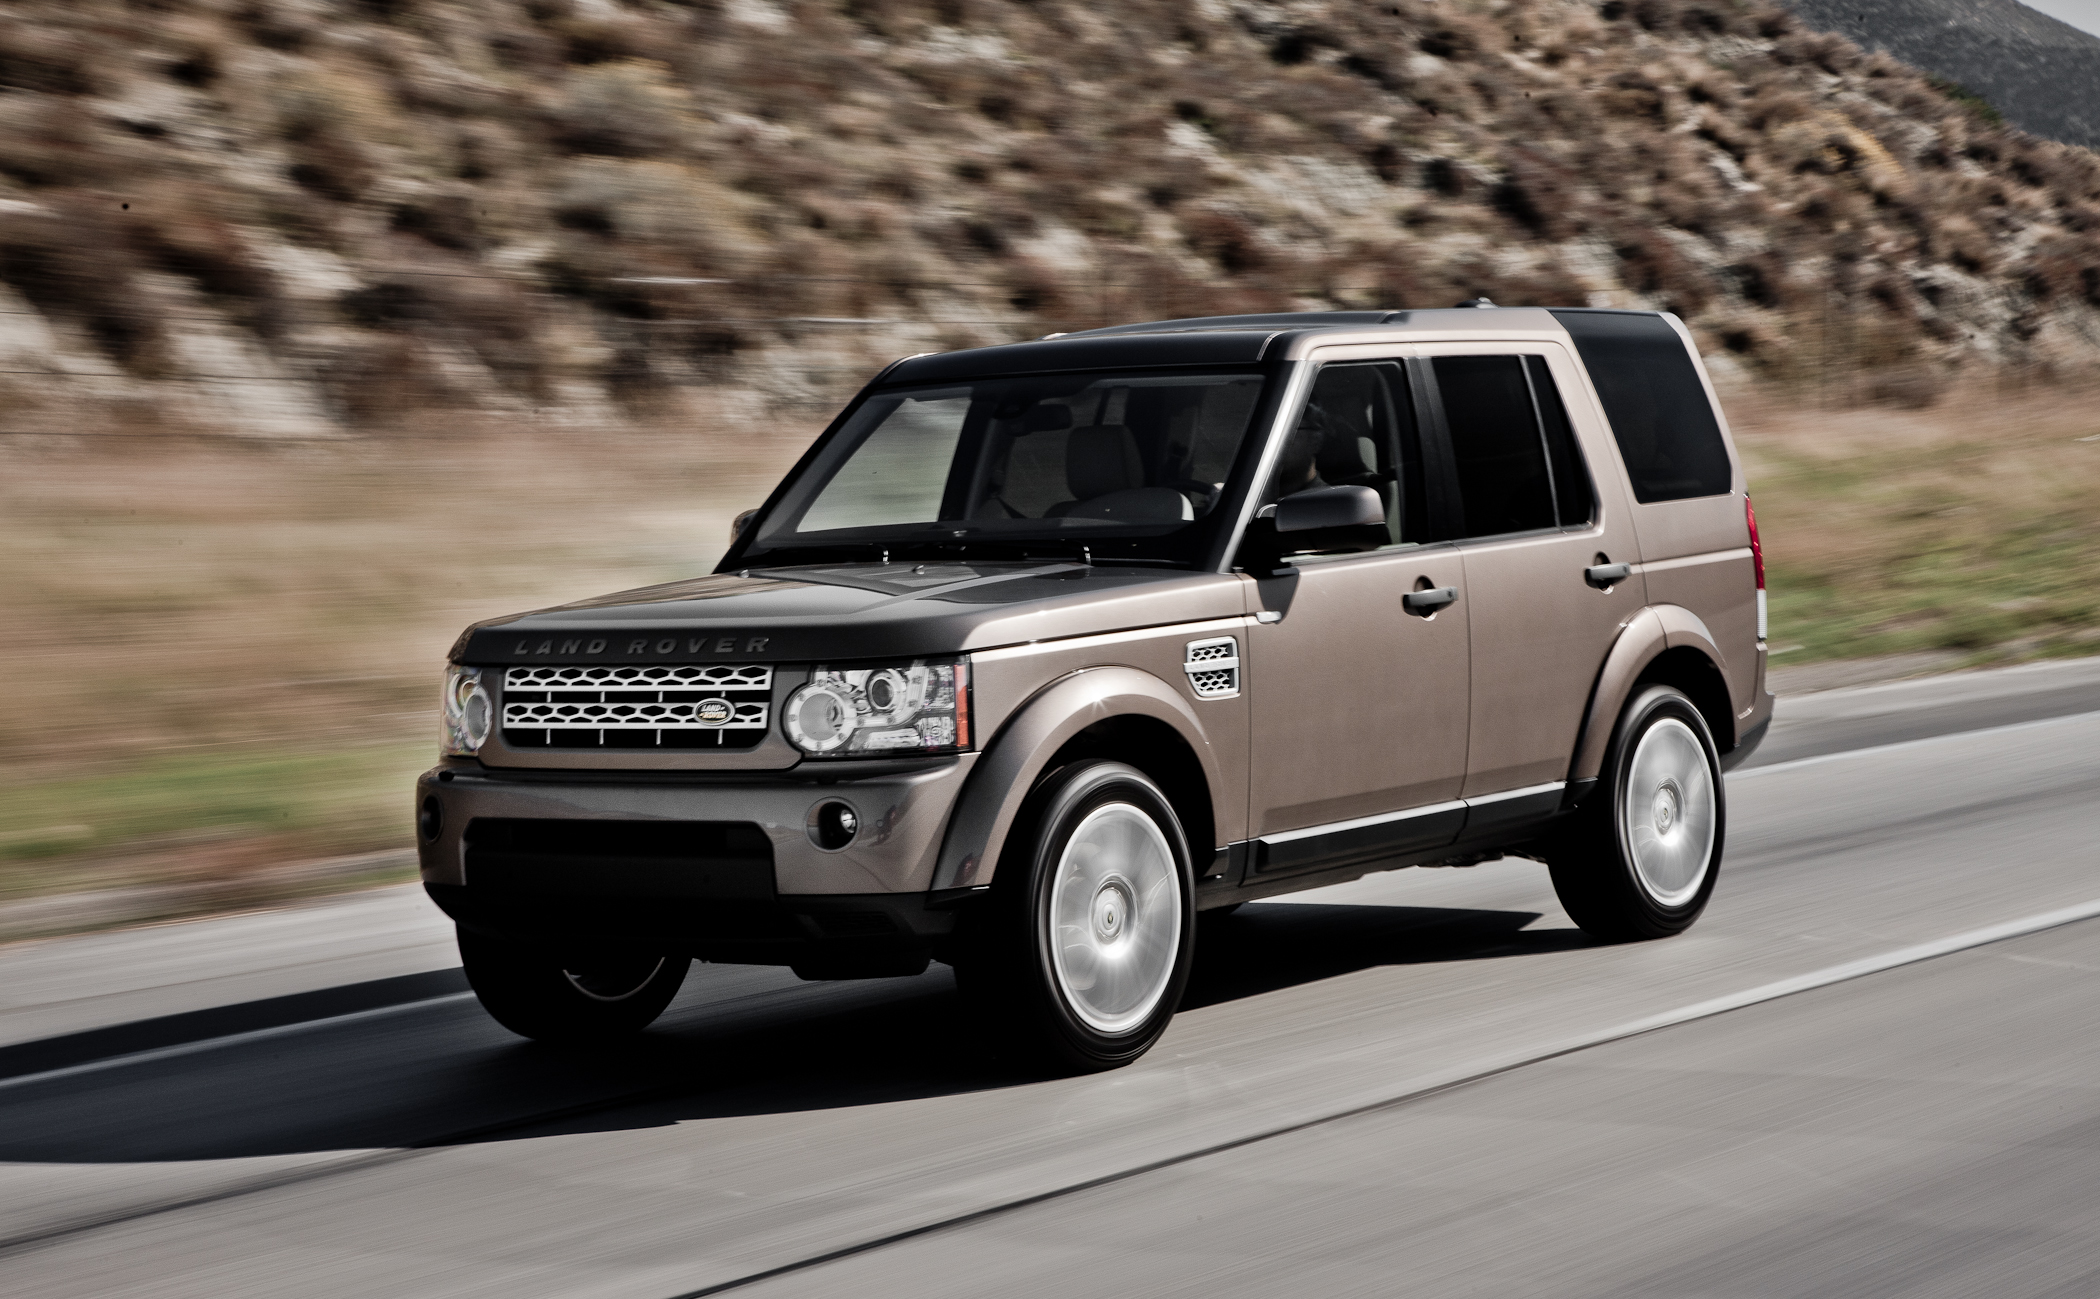 Land Rover Discovery San Antonio >> land rover lr4 related images,start 450 - WeiLi Automotive Network